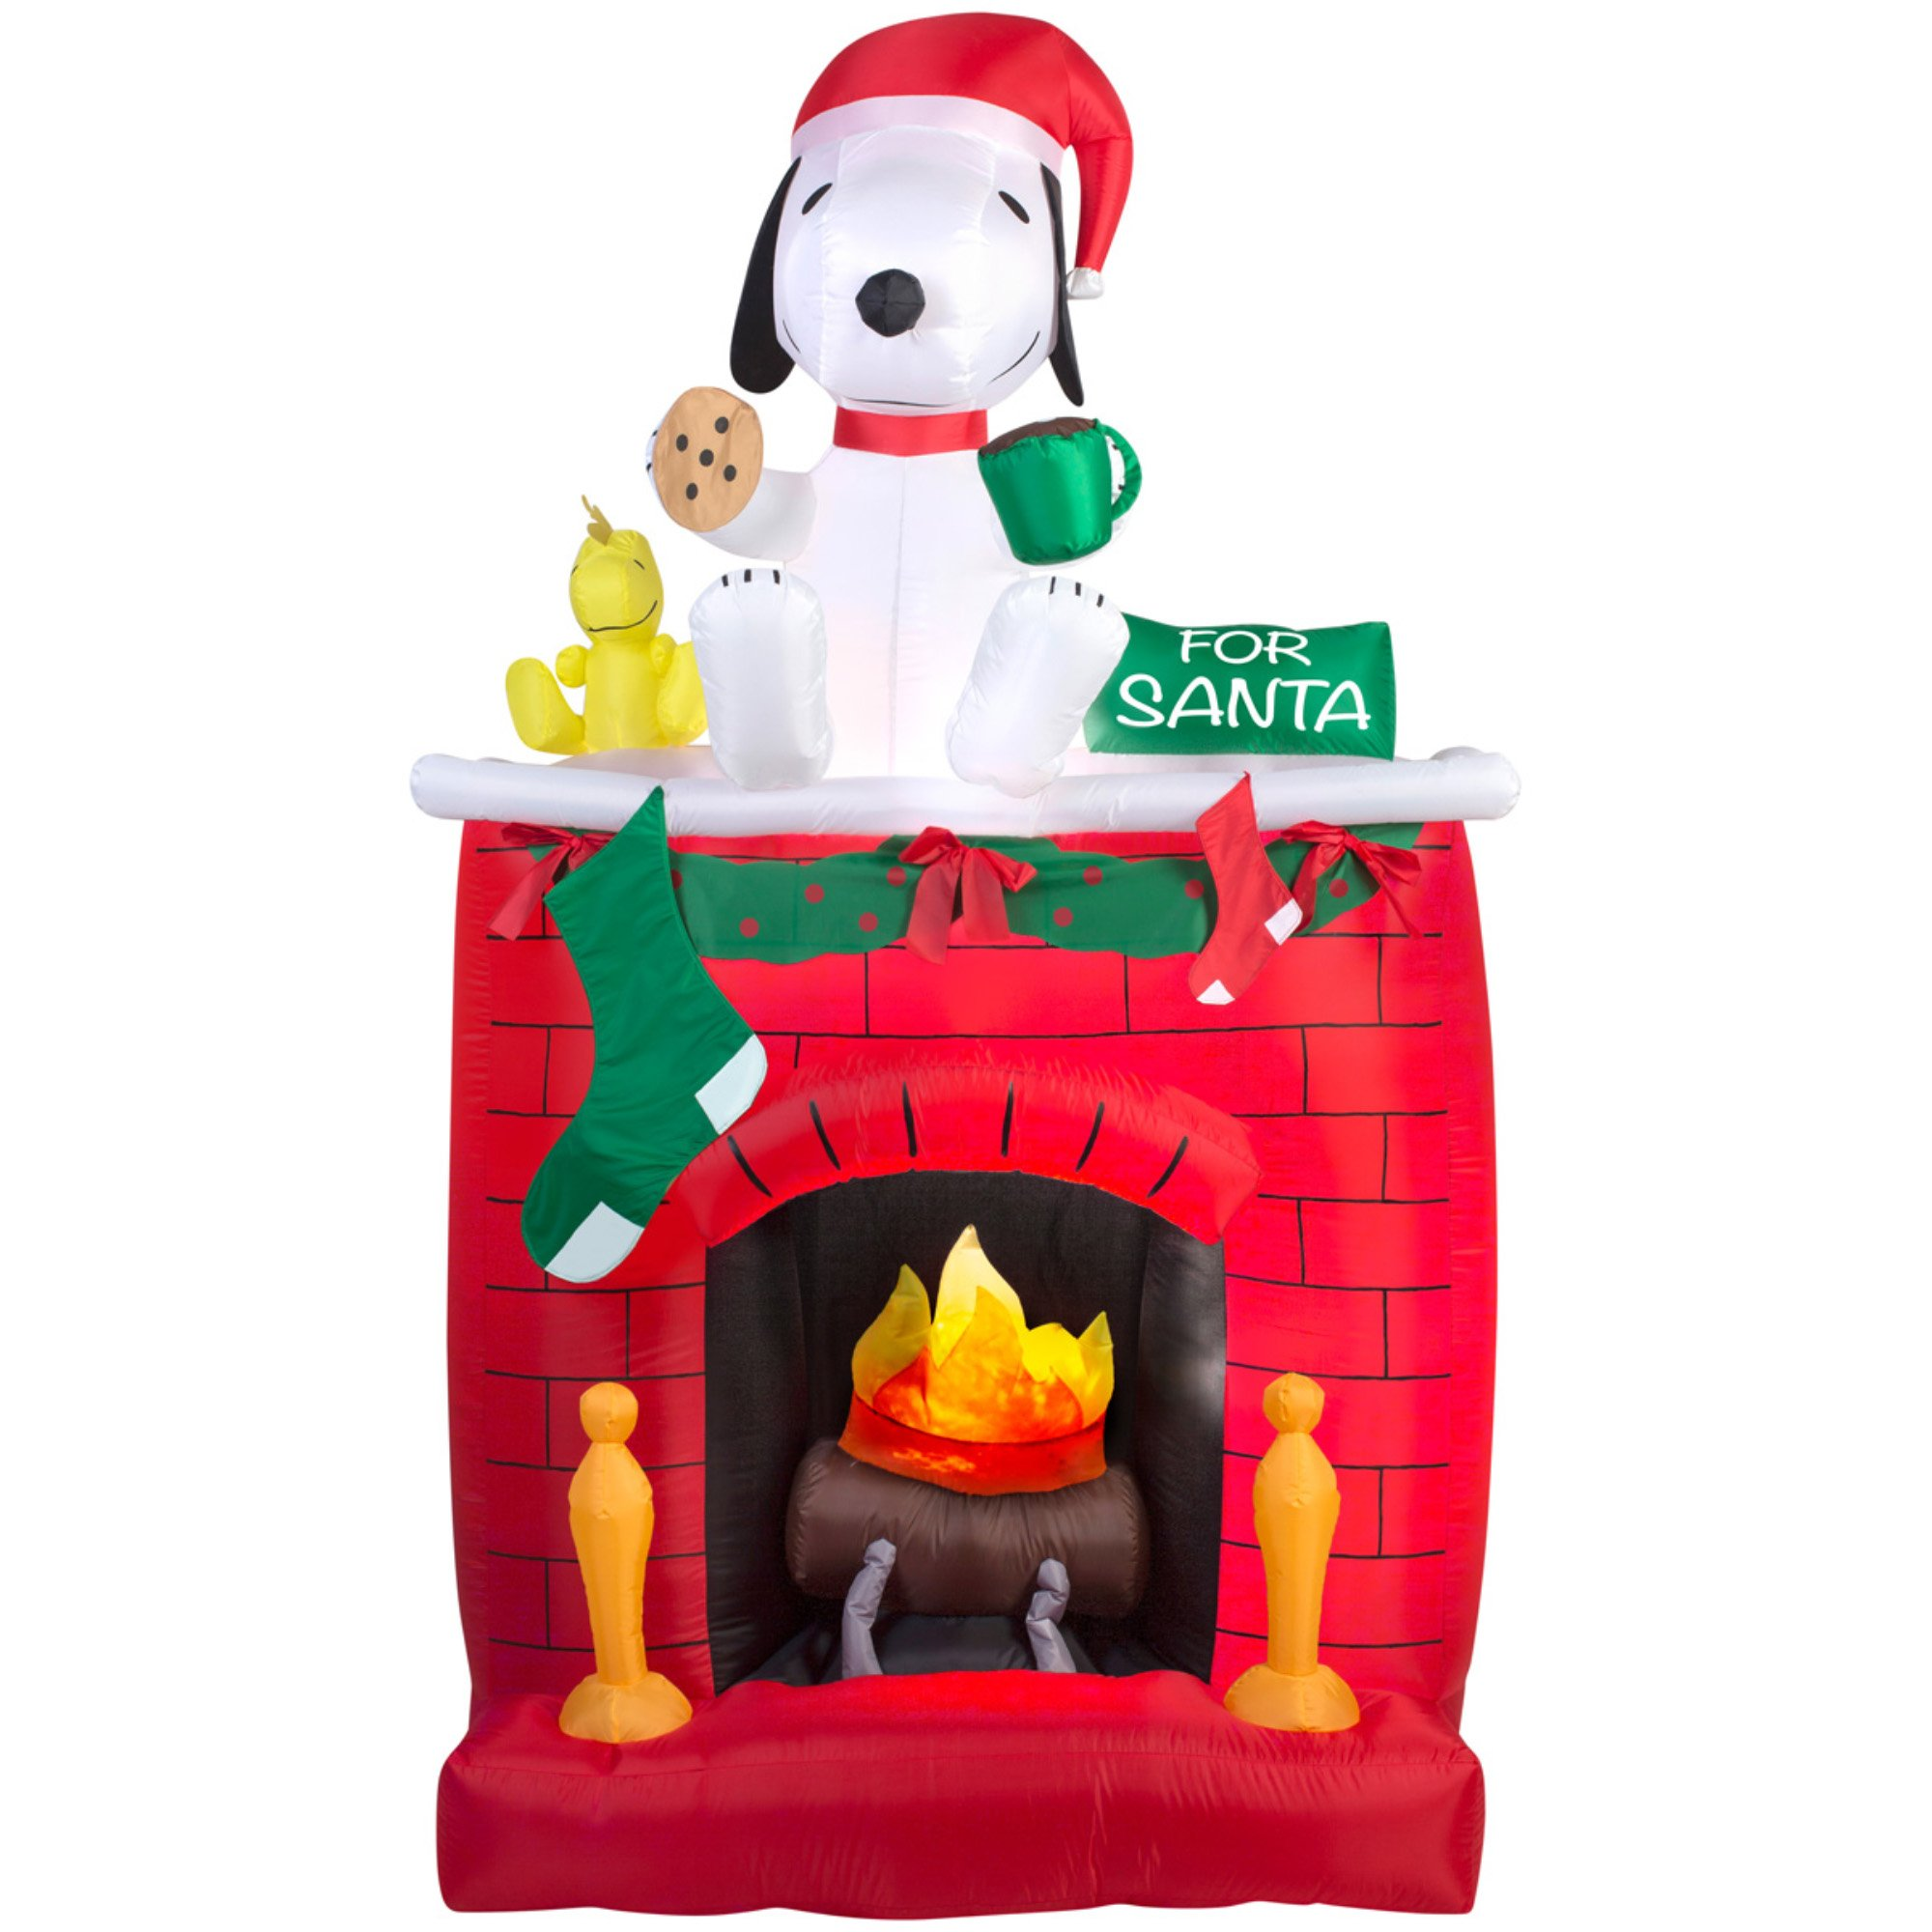 this super cute snoopy christmas yard decoration reveals a memorable holiday scene where snoopy and woodstock patiently await santas arrival - Snoopy Christmas Yard Decorations